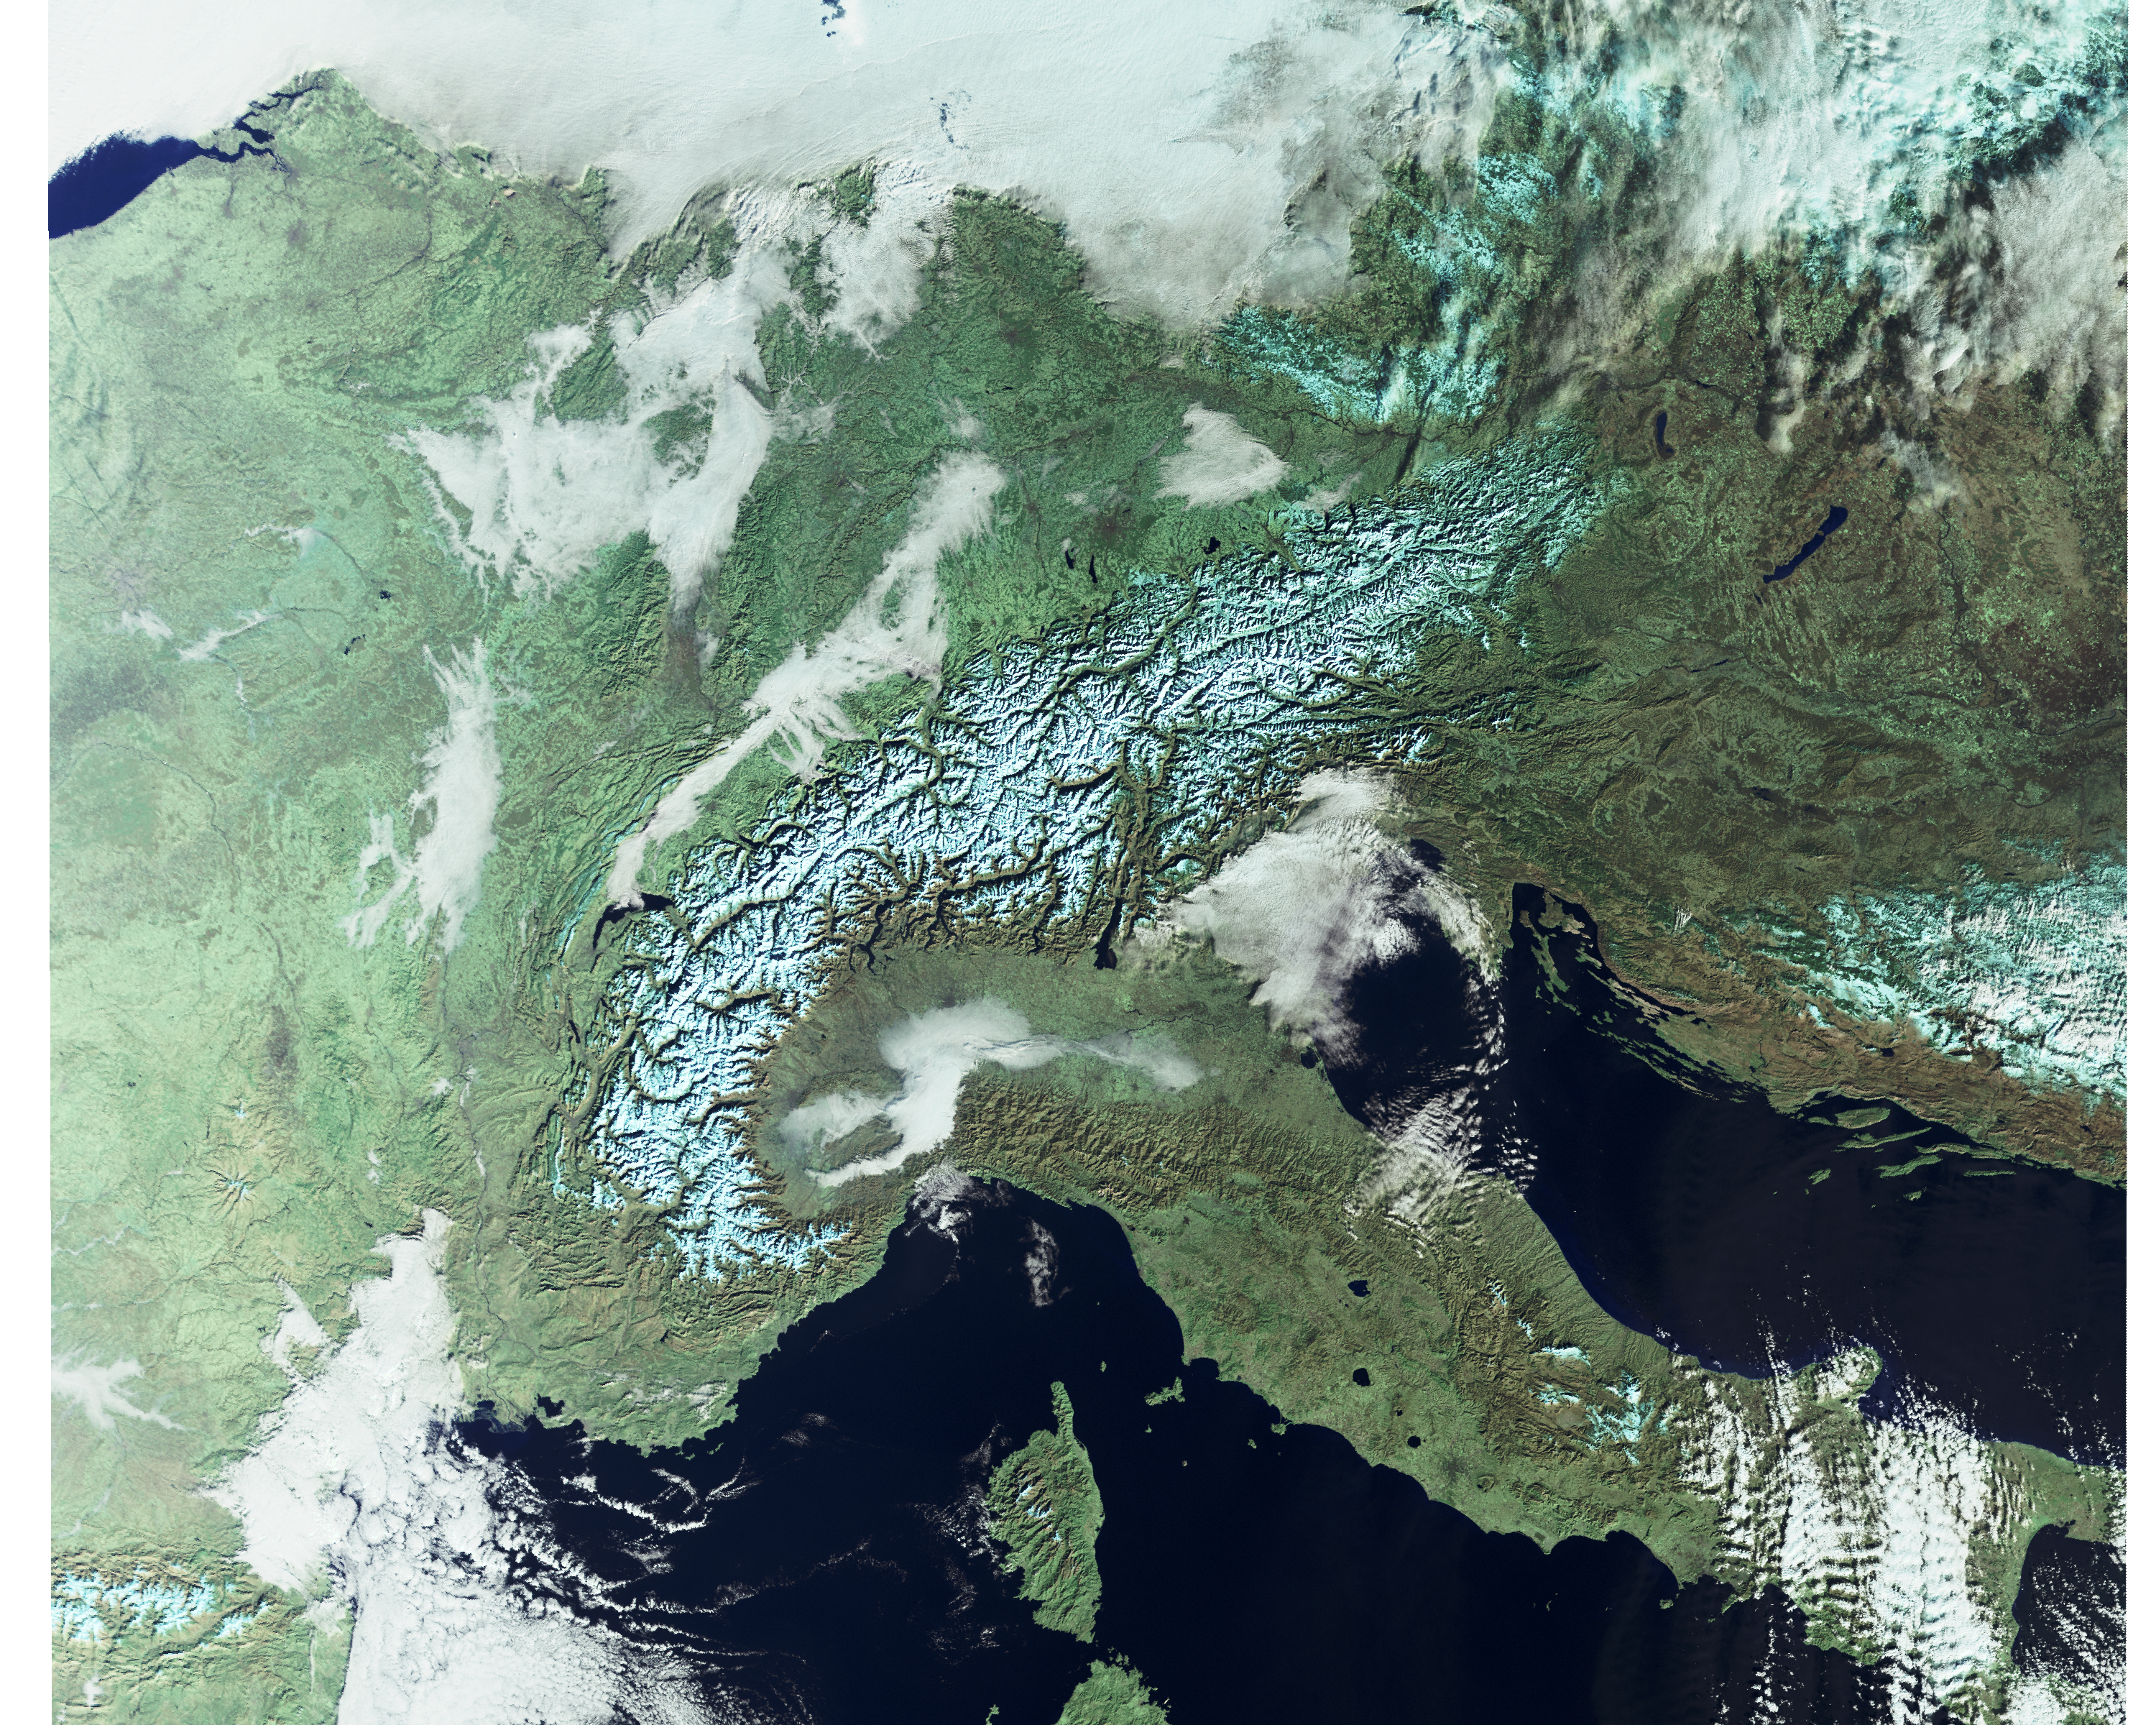 Sentinel-3 image of the Alps showing both snow and clouds